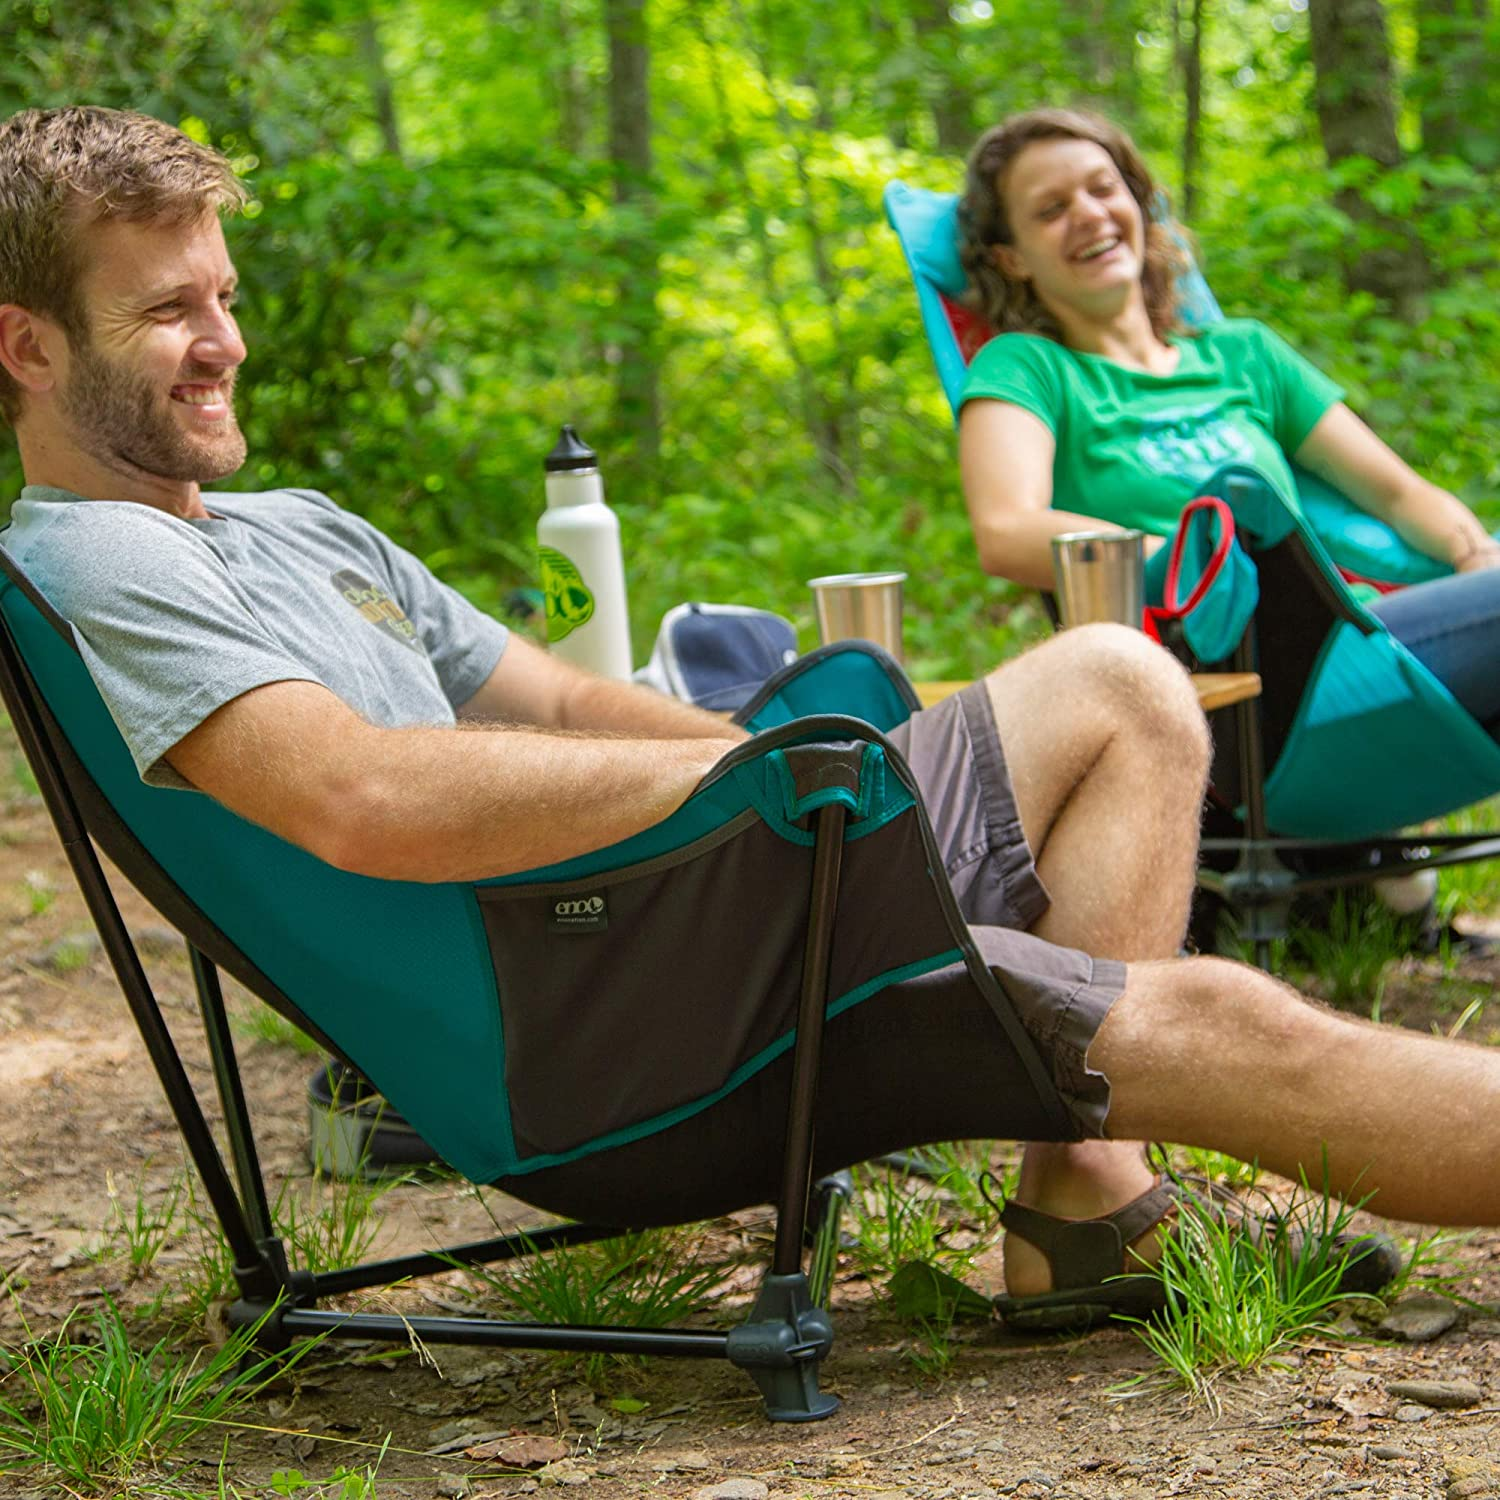 Eagles Nest Outfitters ENO Lounger SL Outdoor Lounge Chair Olive